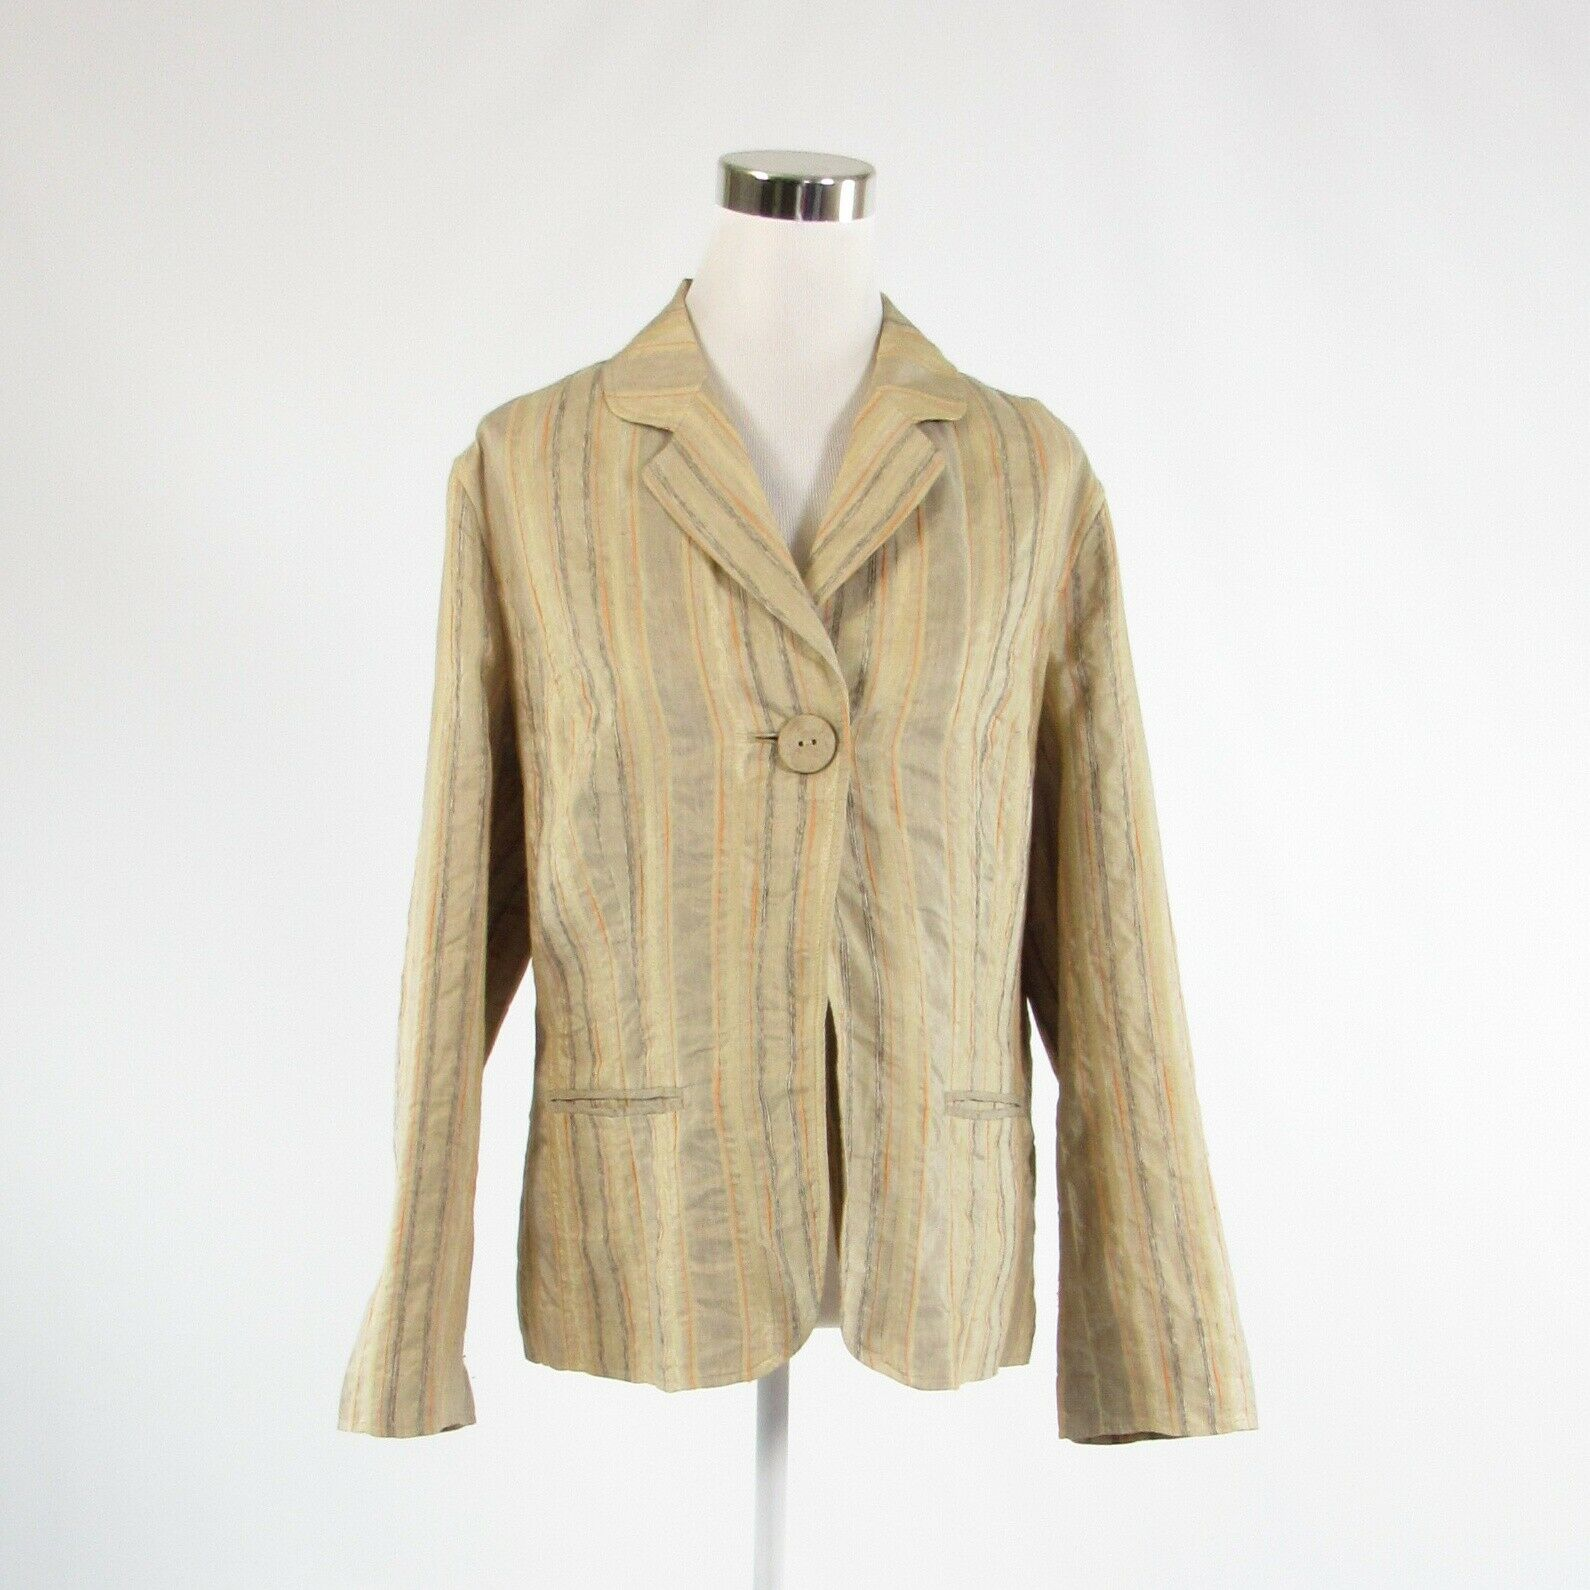 Beige taupe uneven striped linen blend J JILL long sleeve blazer jacket L-Newish